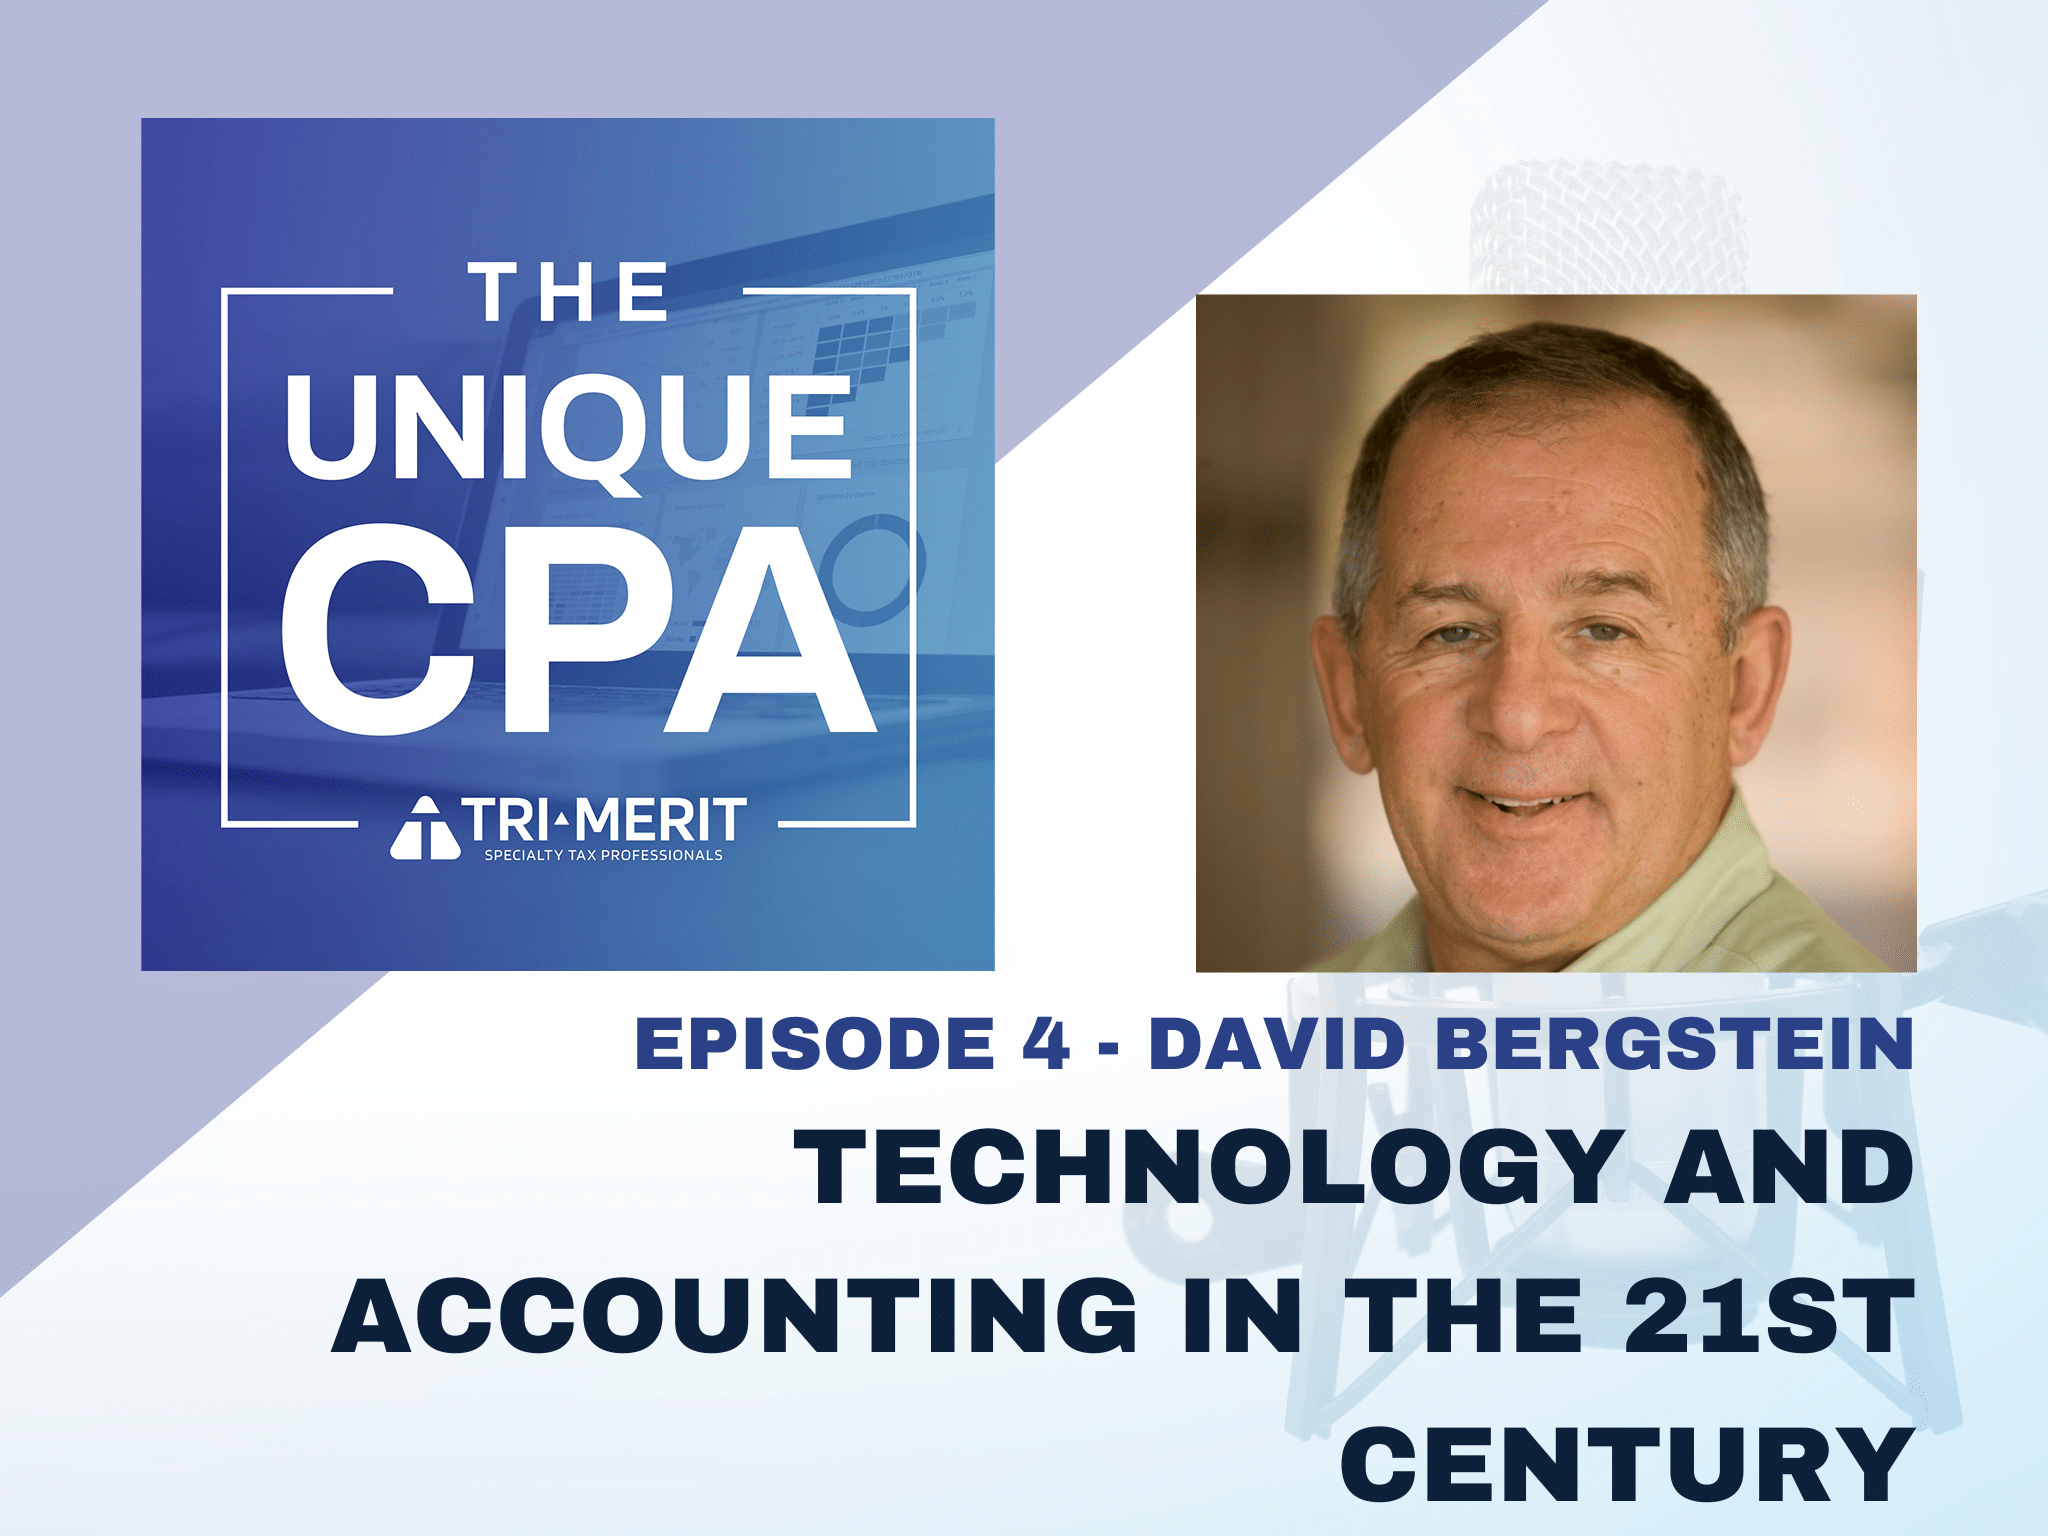 The Unique CPA Feature Image Ep 4 - Technology and Accounting in the 21st Century - Tri-Merit